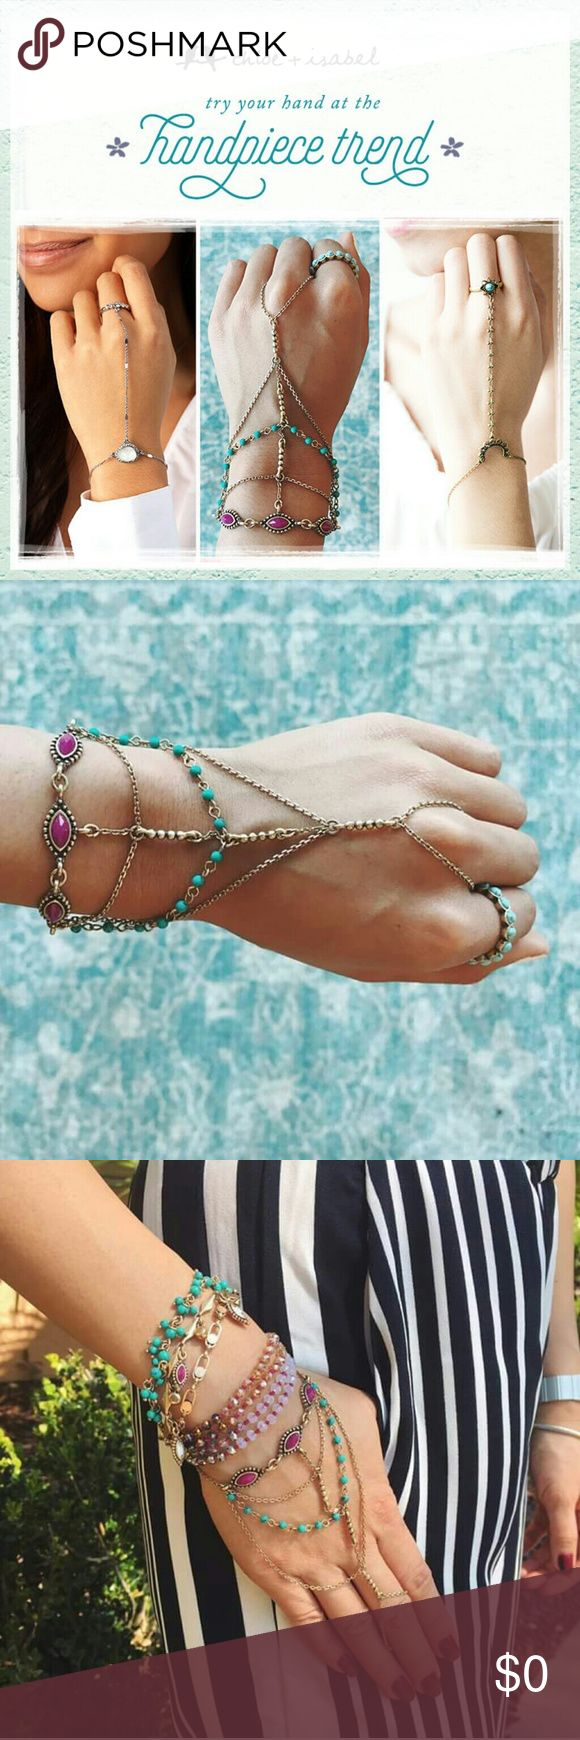 TrendSet This Summer!! Hand pieces are definitely must haves this summer! Don't delay get one now! Shop hand pieces on my online boutique! Https://www.chloeandisabel.com/boutique/brittanys Chloe + Isabel Jewelry